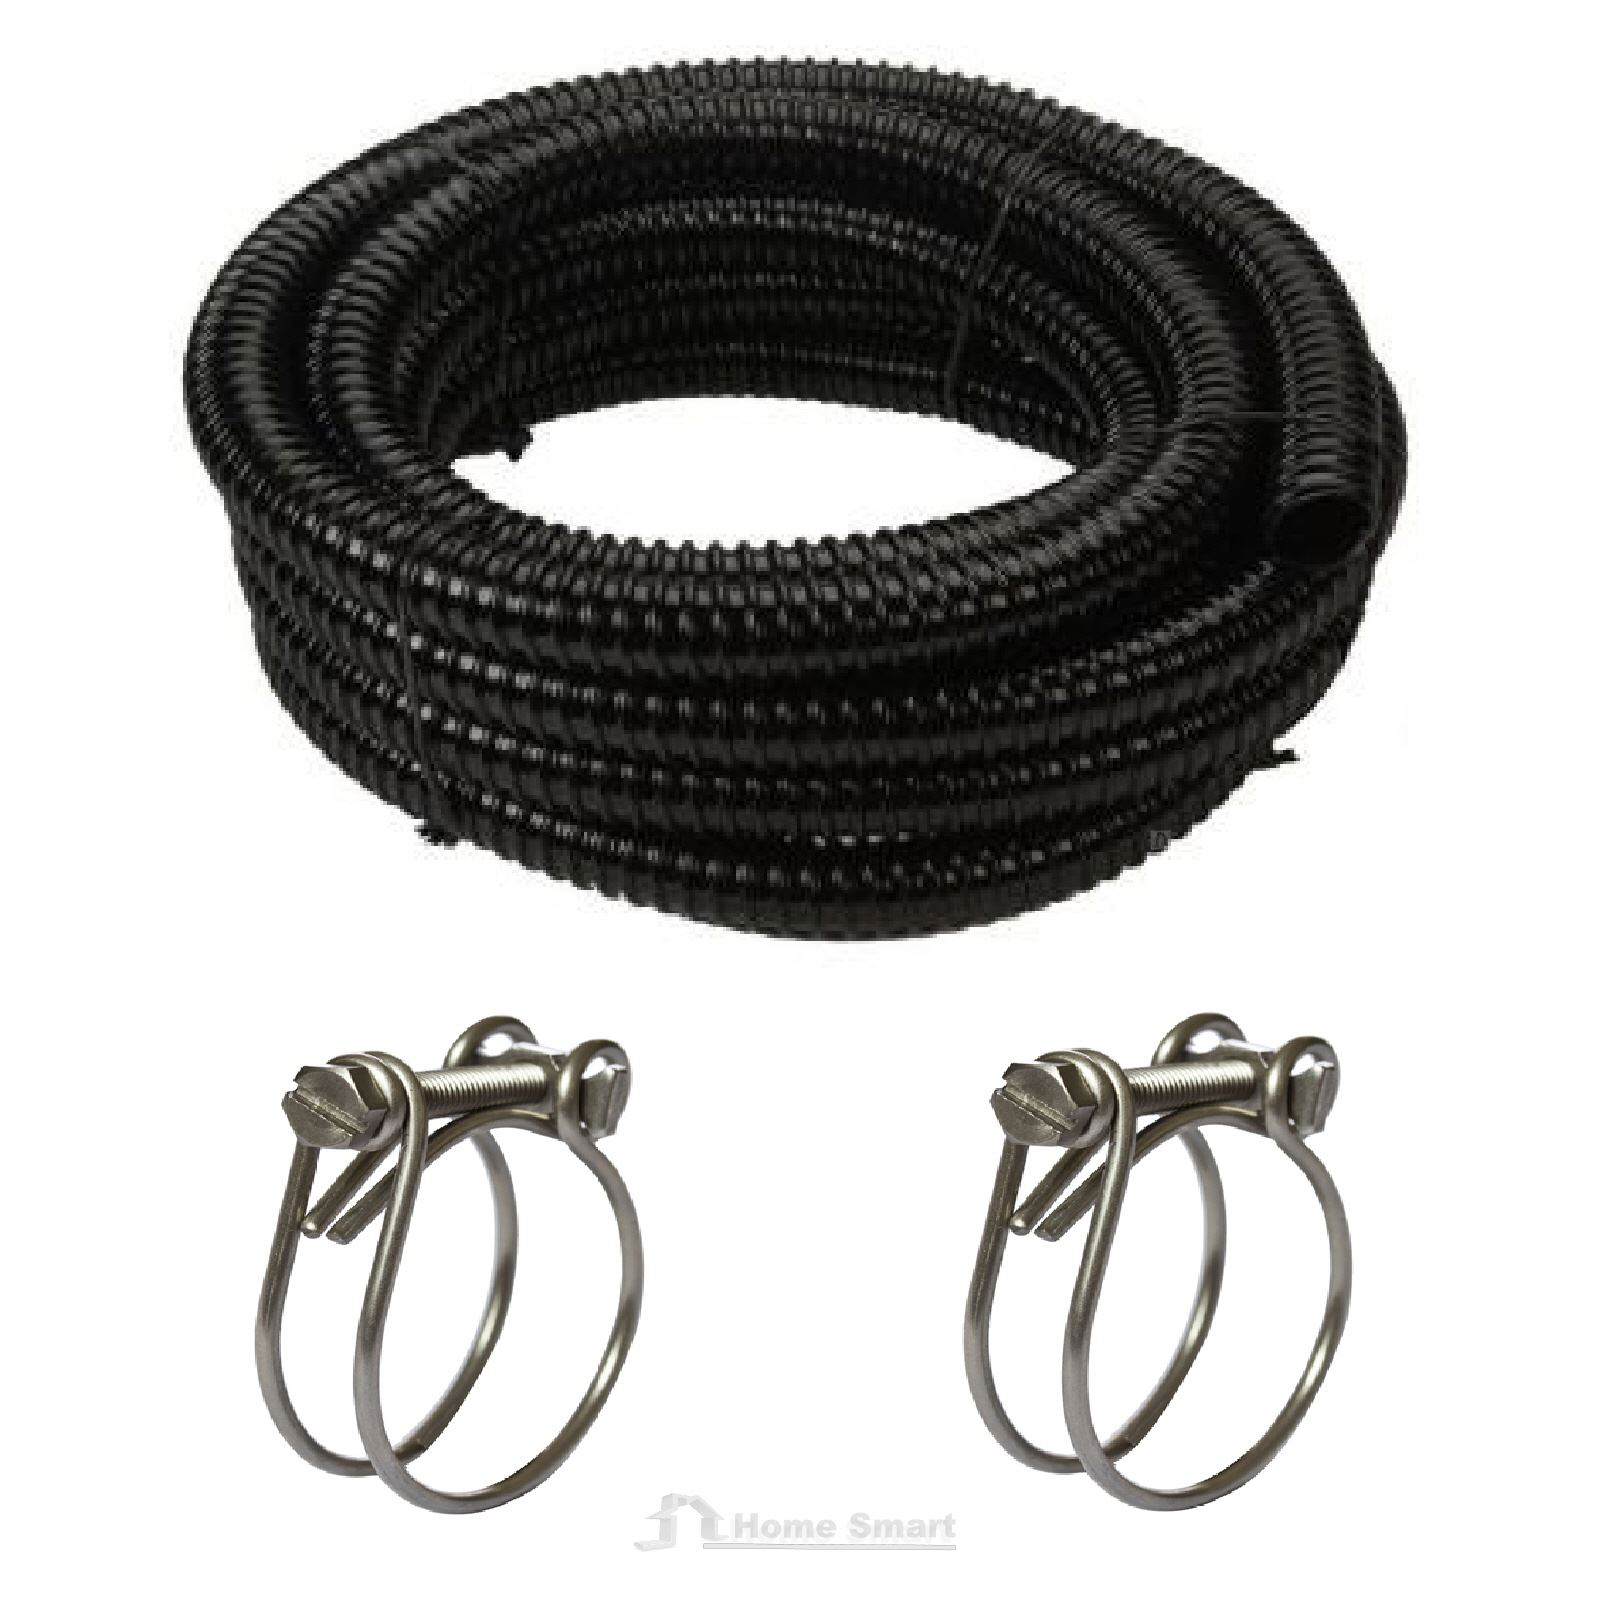 Corrugated flexible garden pond hose with 2 x wire clips for Garden pond hose